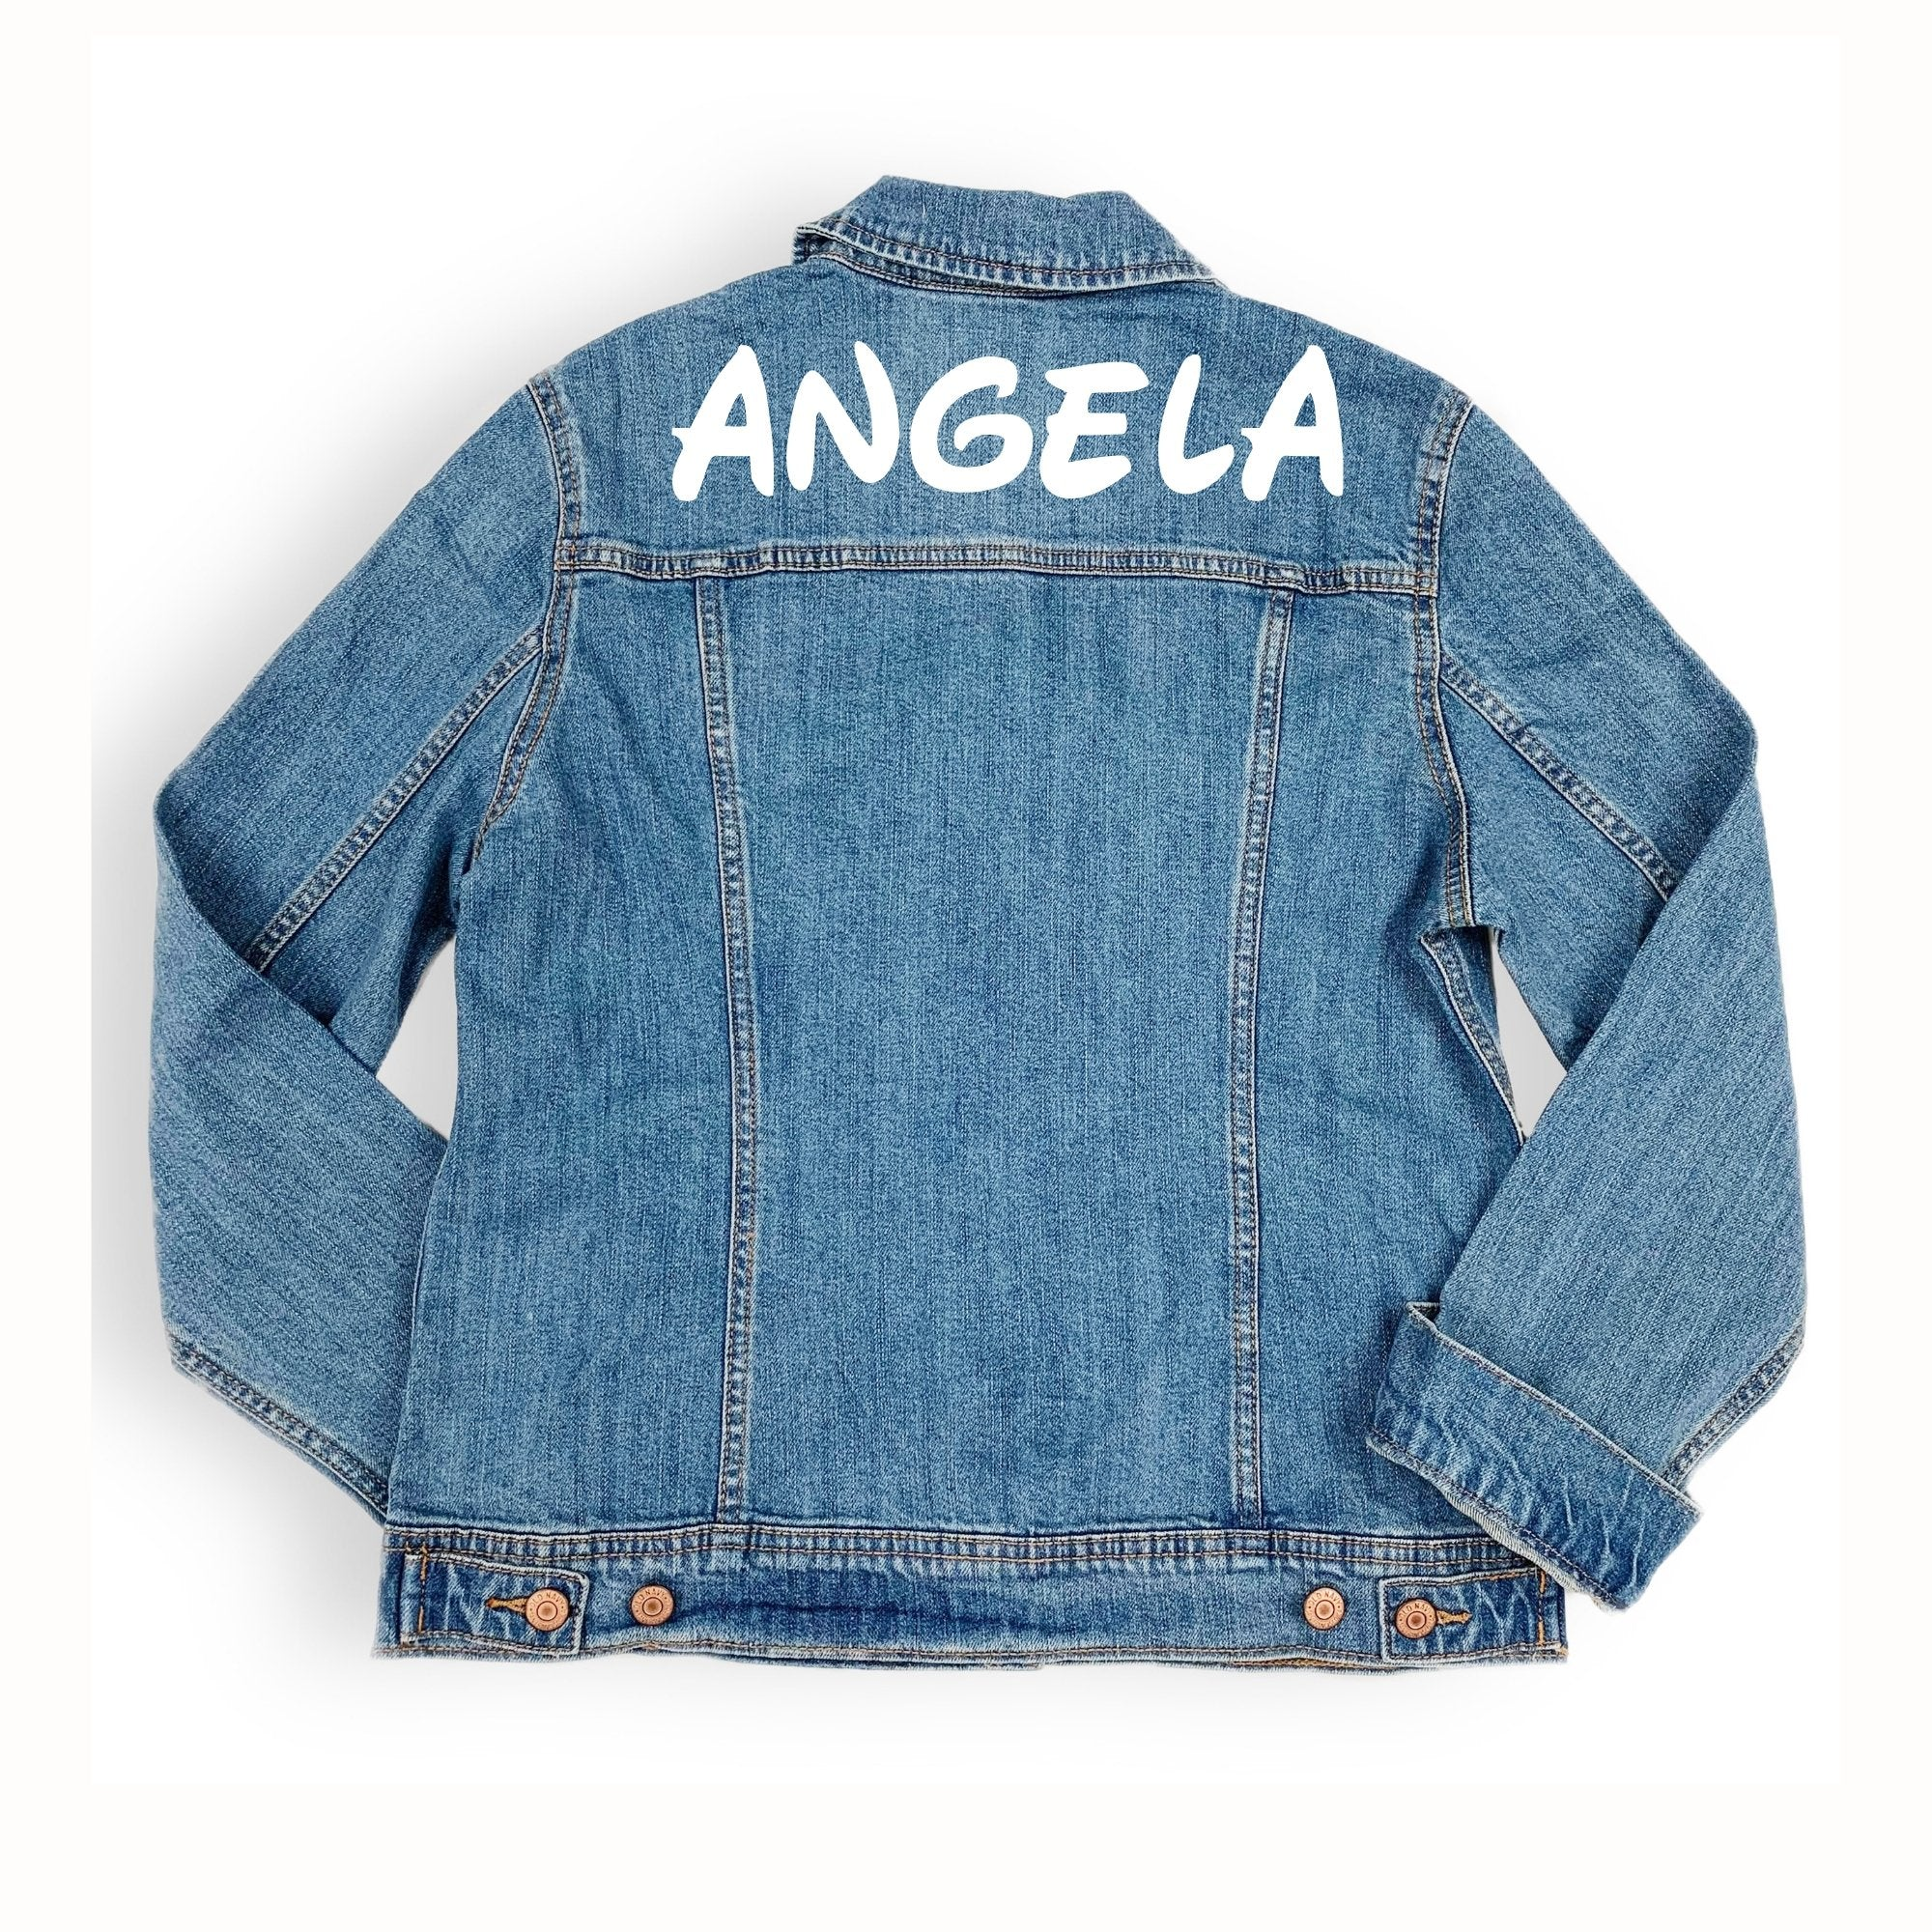 Custom Name Jean Jacket - Sprinkled With Pink #bachelorette #custom #gifts